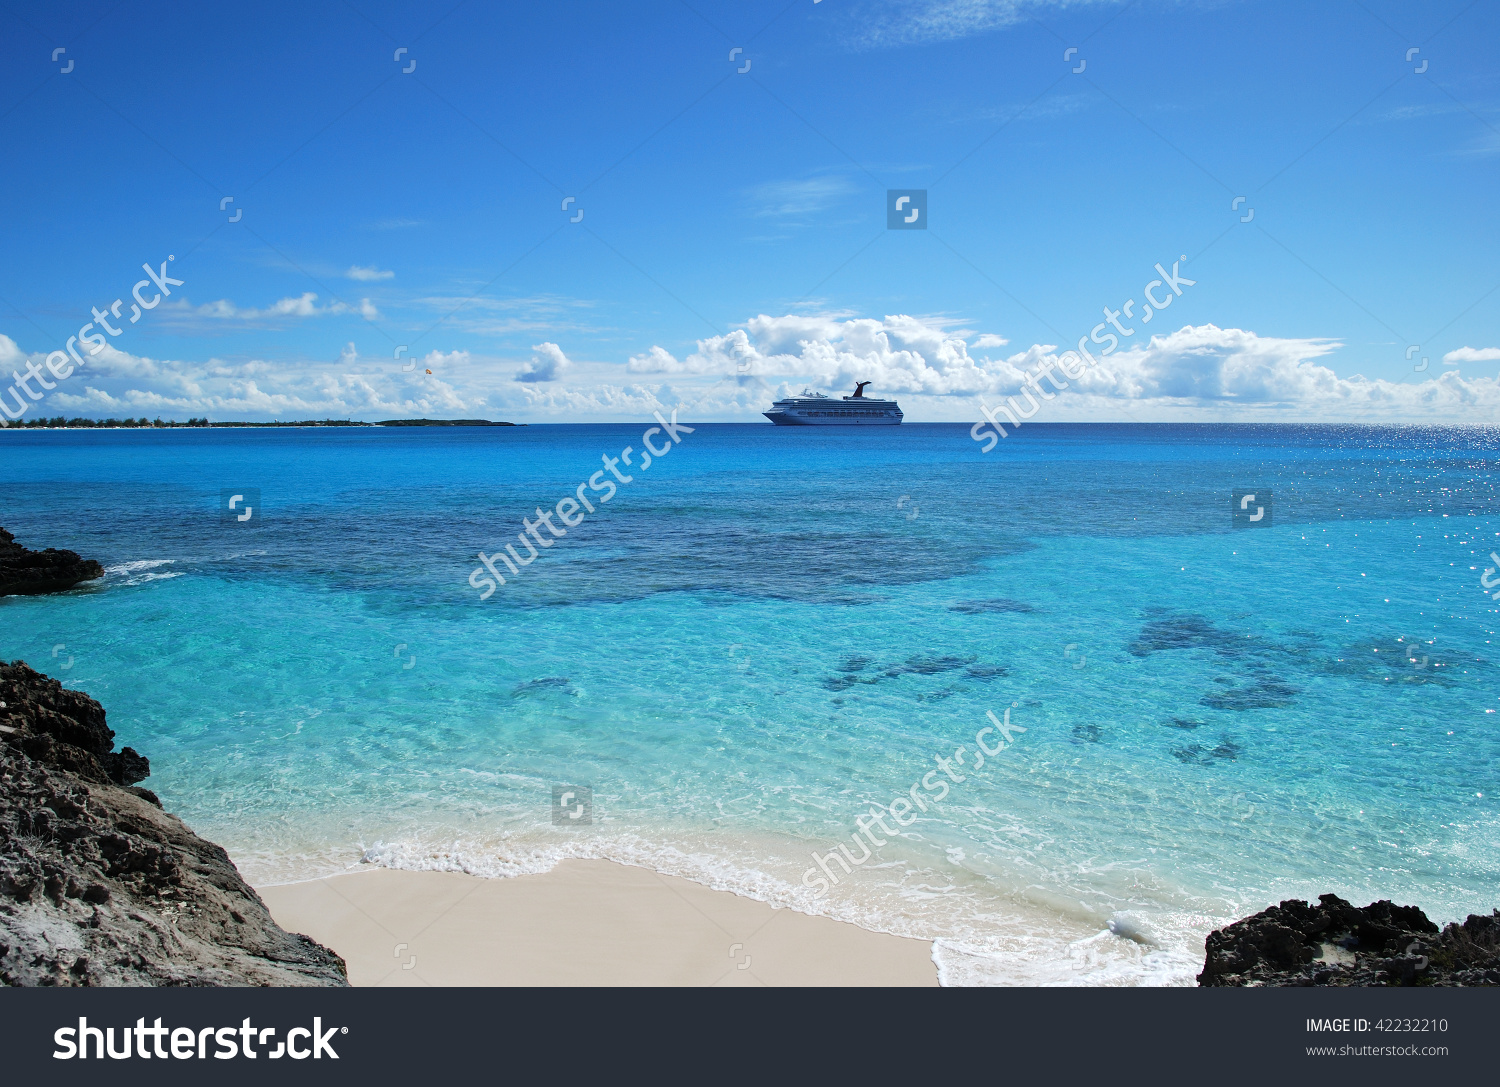 The View Of Half Moon Cay Beach With A Cruise Liner In A.